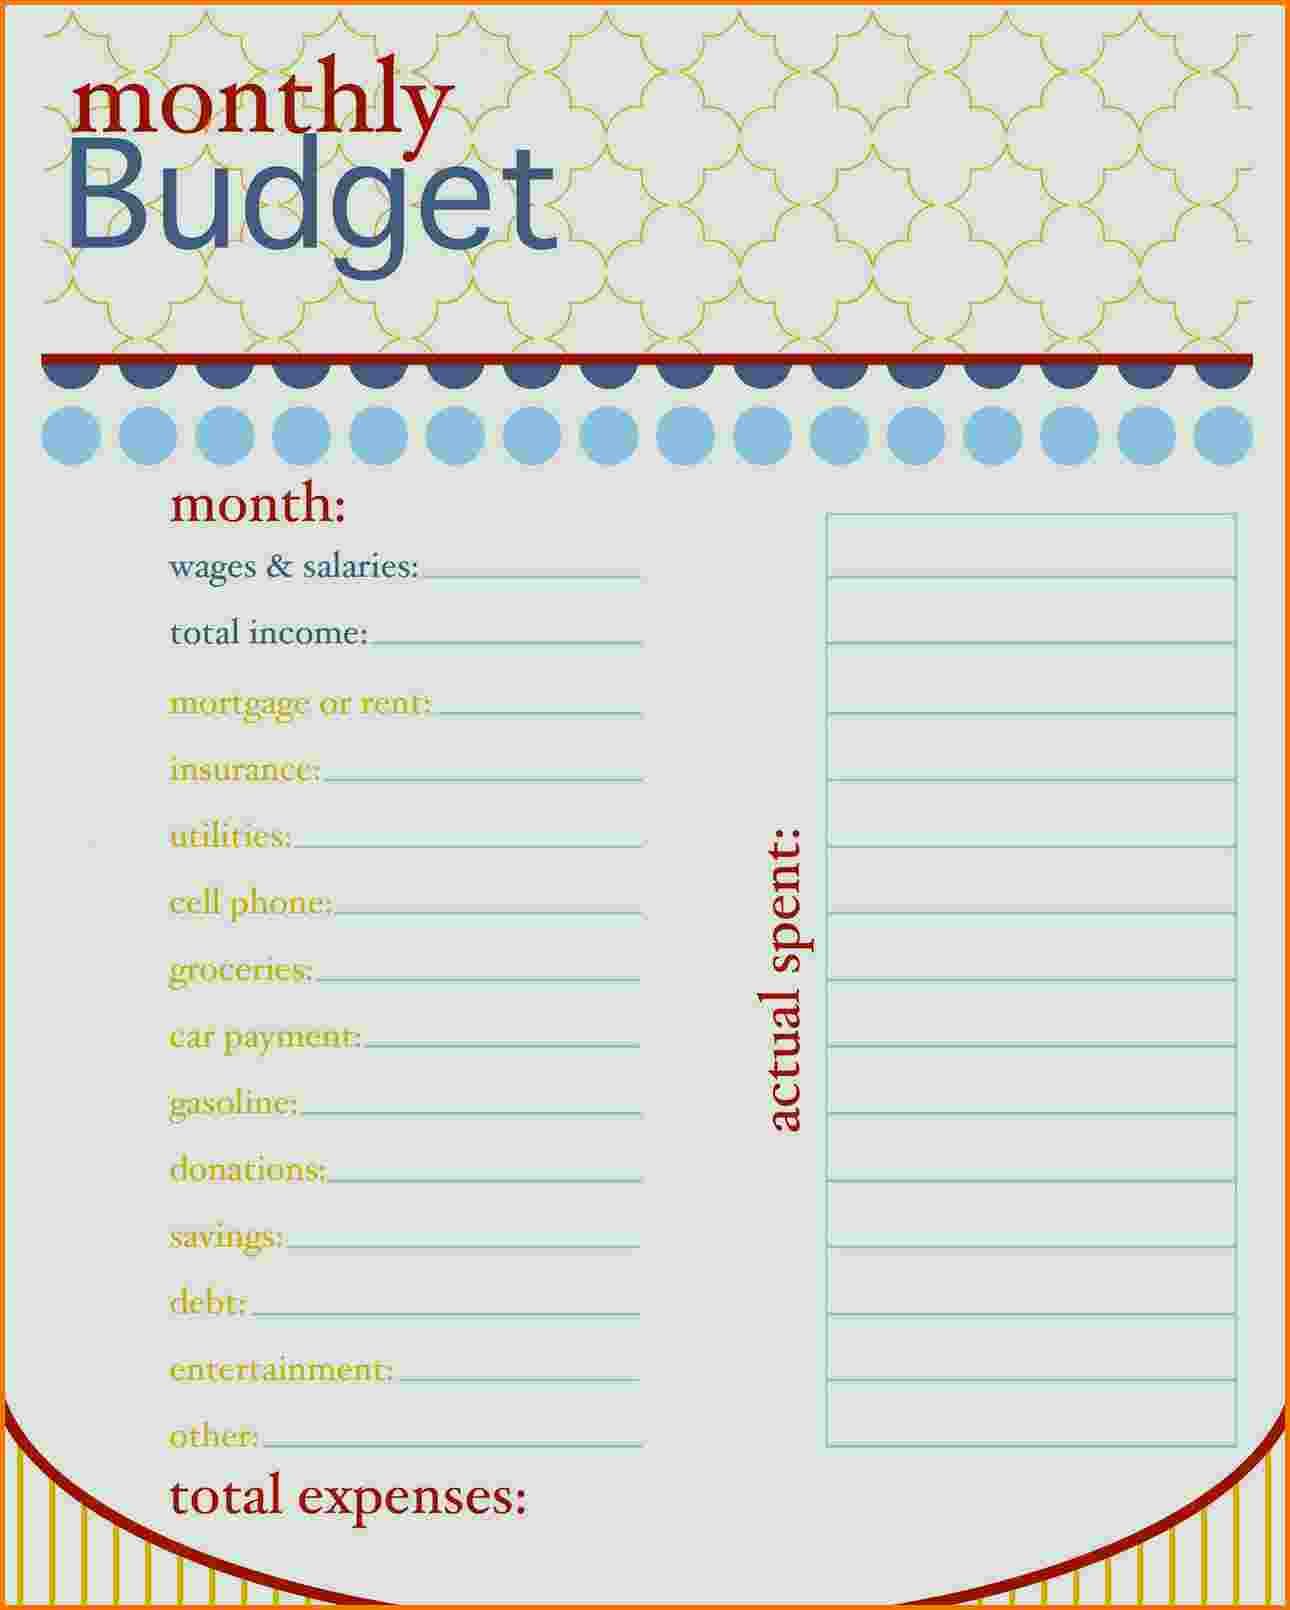 Household Expense Spreadsheet Template Free In Daily